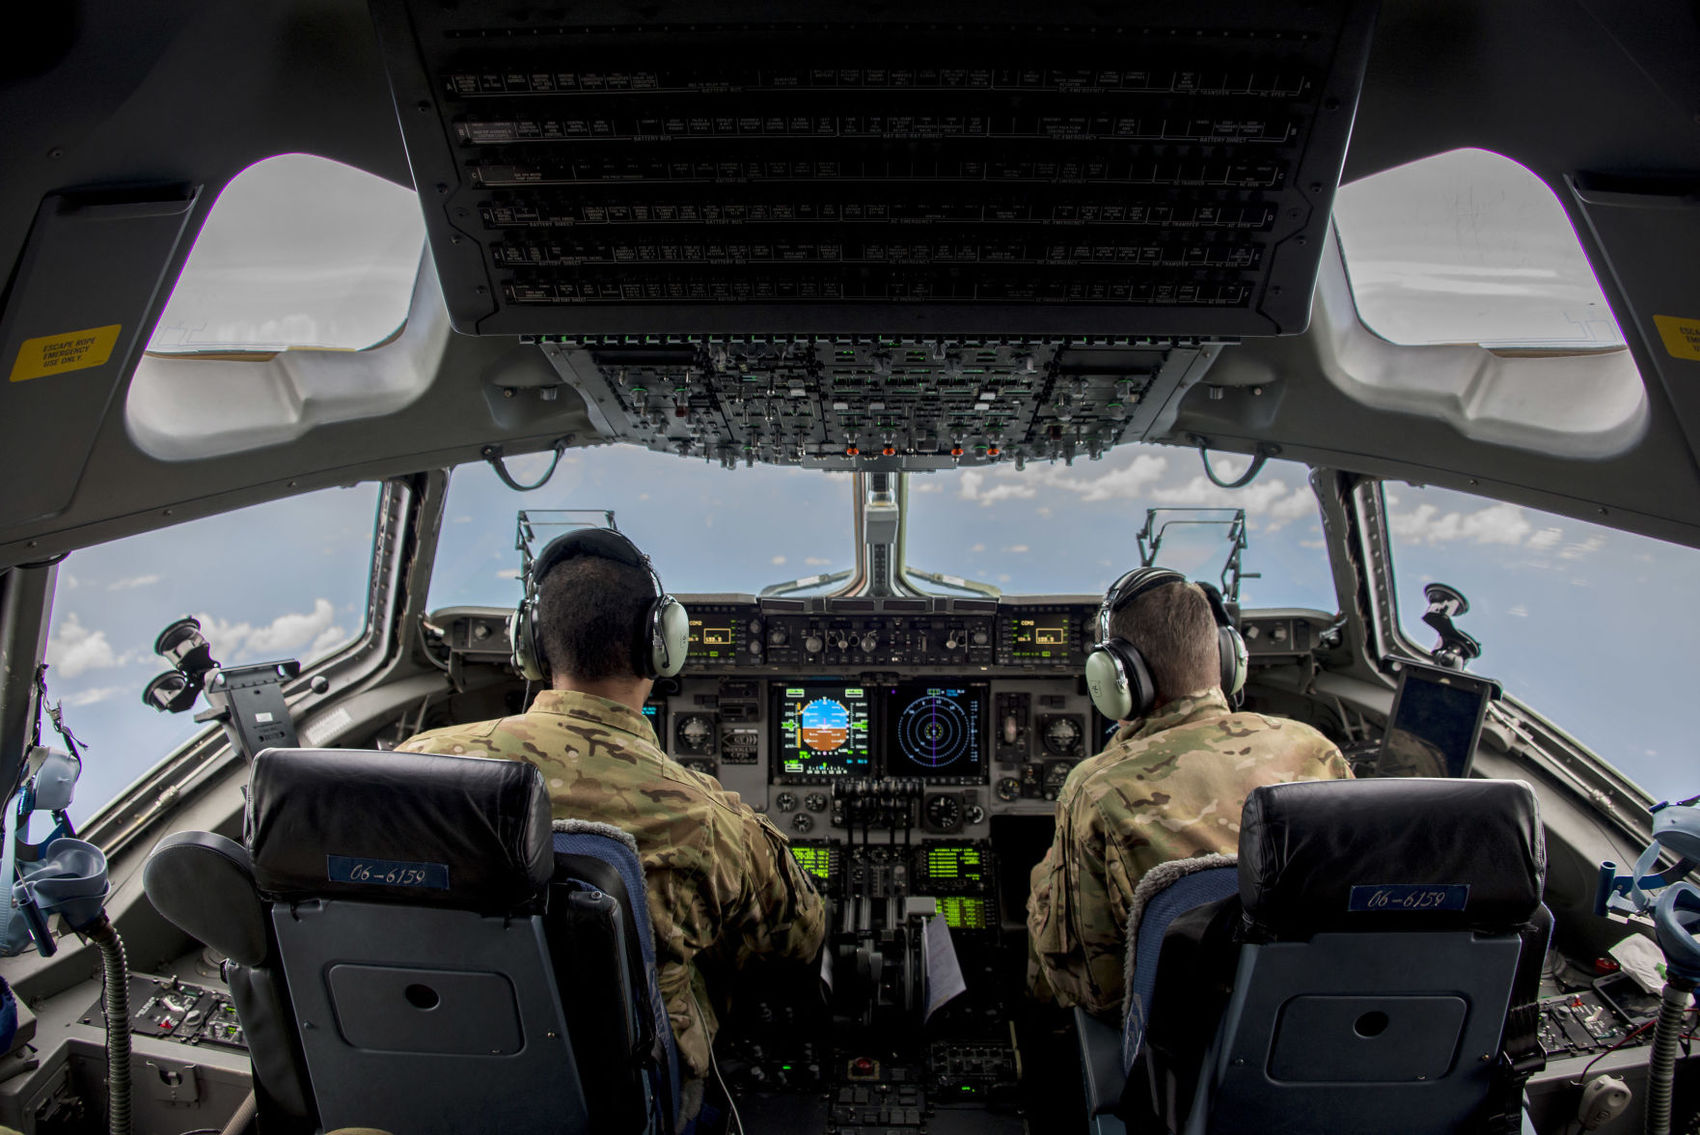 Keeping experienced pilots a critical concern for Air Force brass